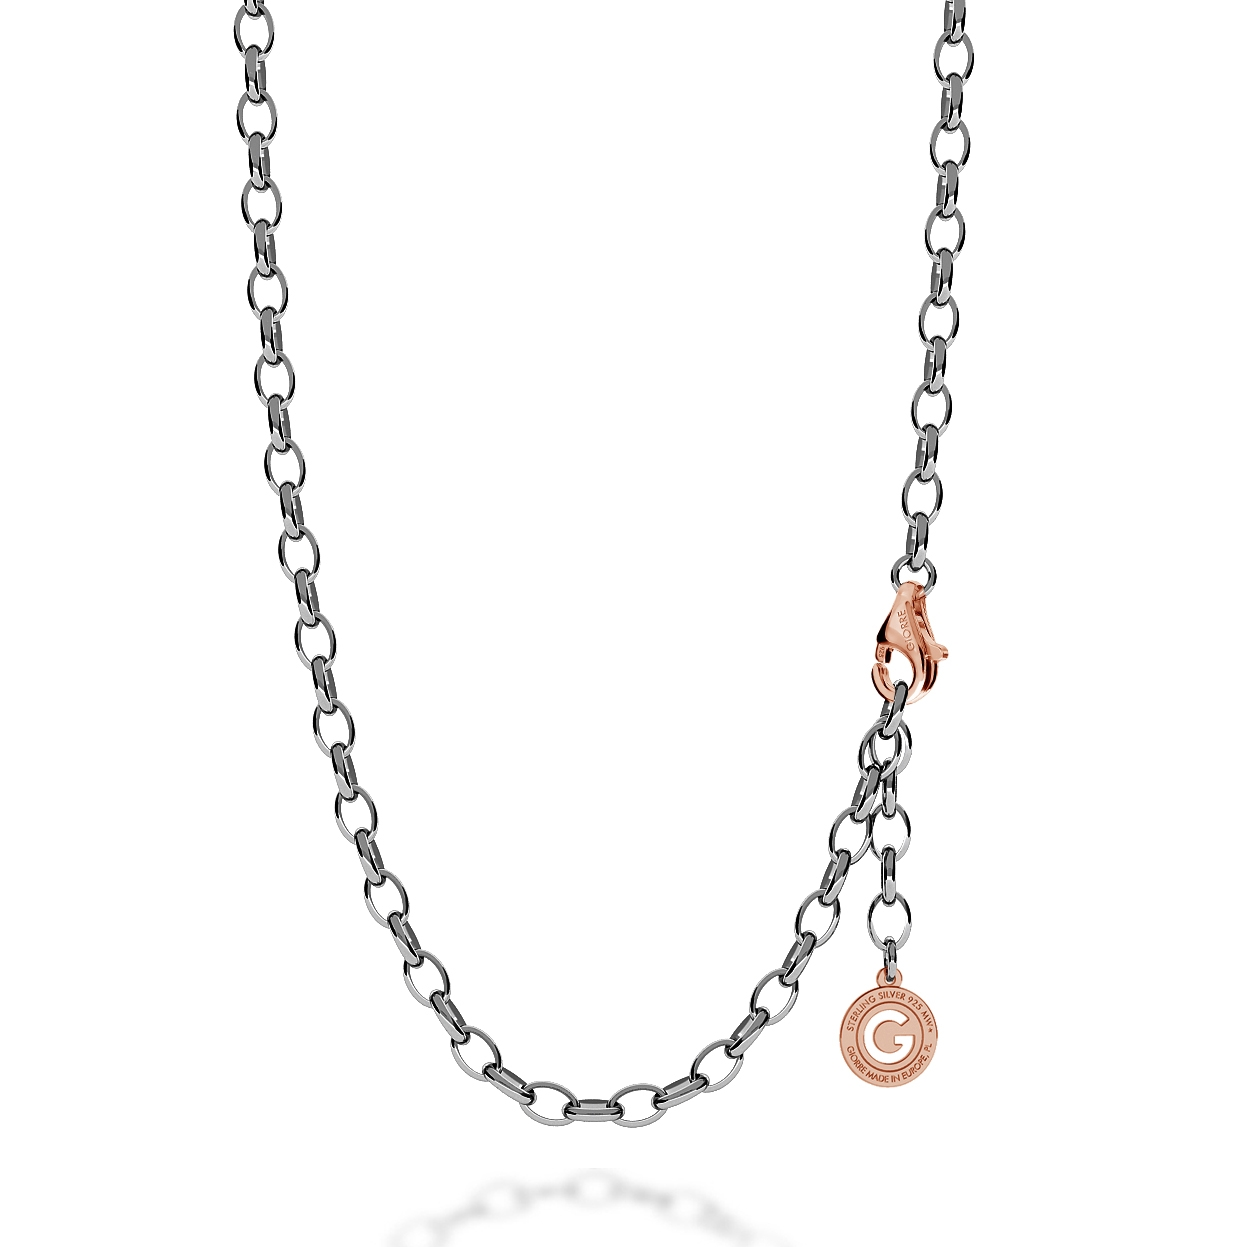 STERLING SILVER NECKLACE 55-65 CM BLACK RHODIUM, PINK GOLD CLASP, LINK 7X5 MM